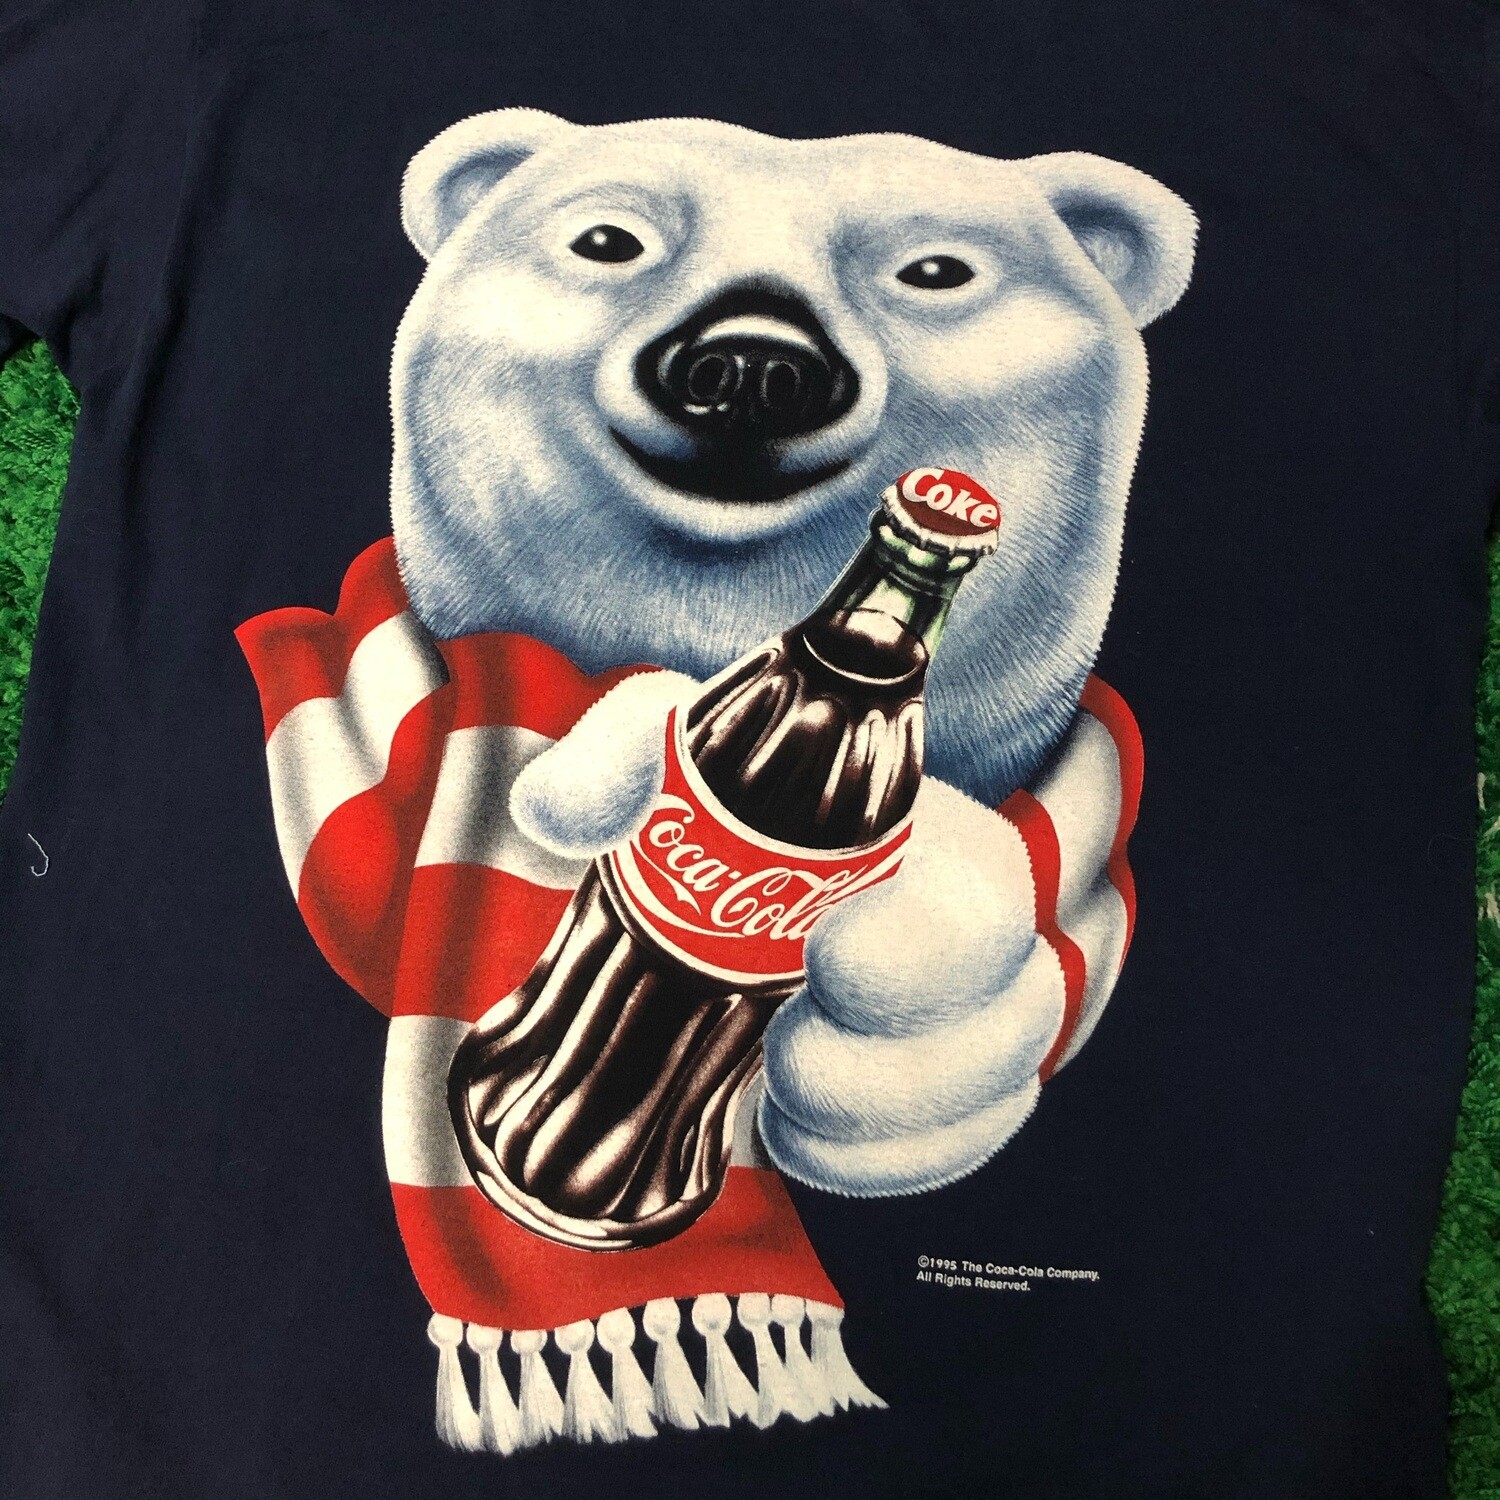 Coca-Cola 1995 Bear Shirt Size XL